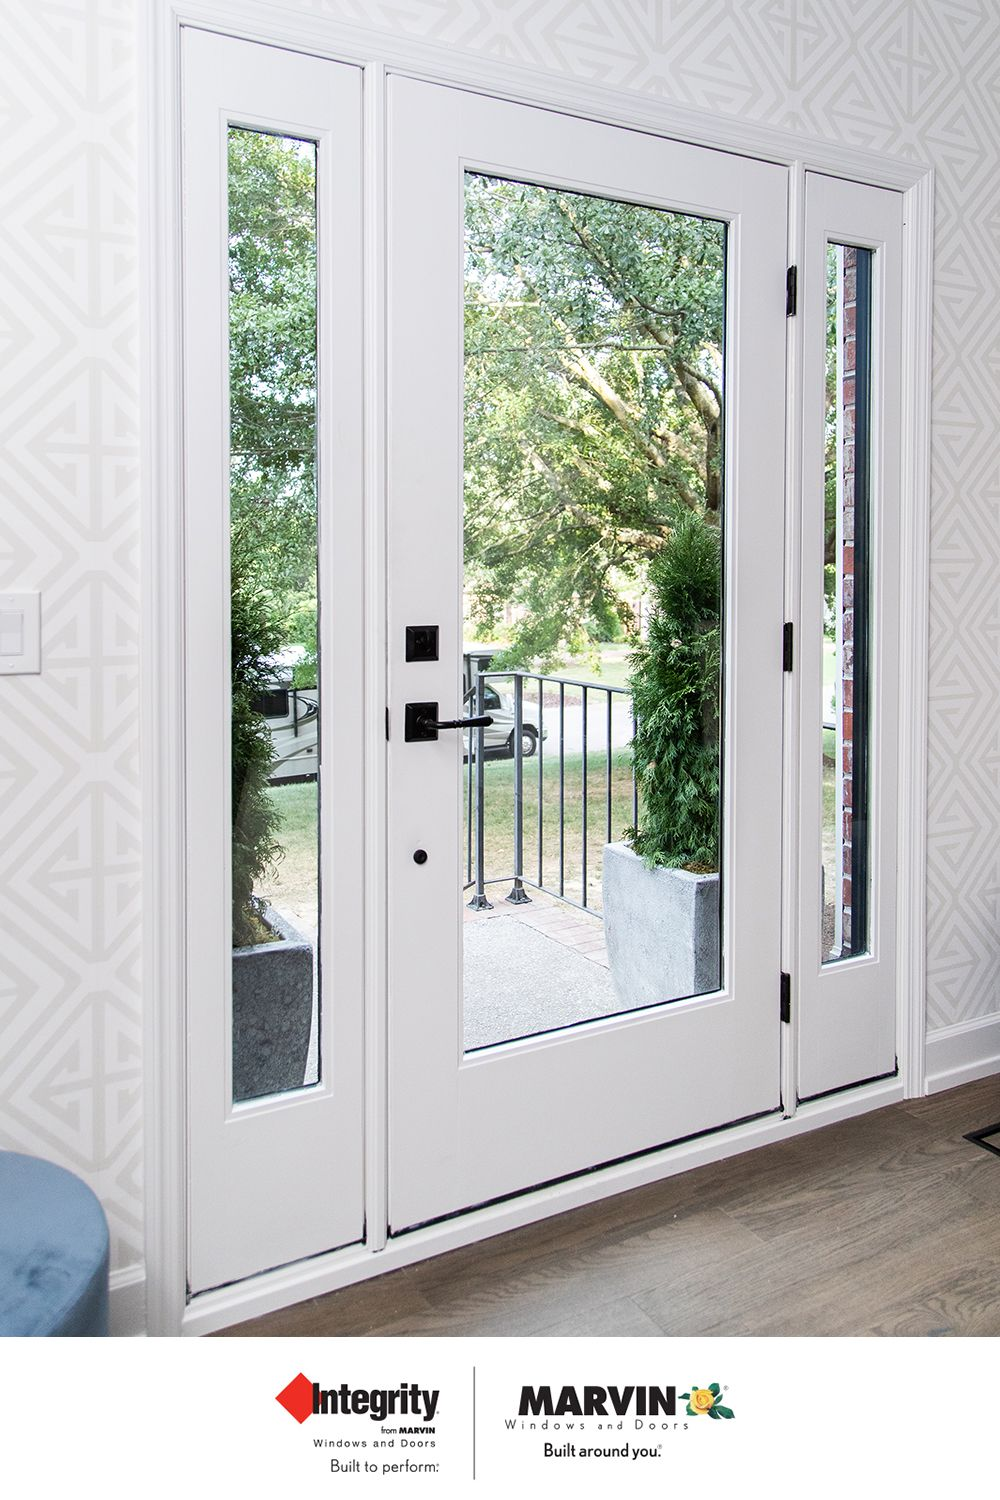 New Dark Interior Window Door Finishes Provide The Perfect Accent For Hgtv Renovations Interior Windows Dark Interiors Windows And Patio Doors